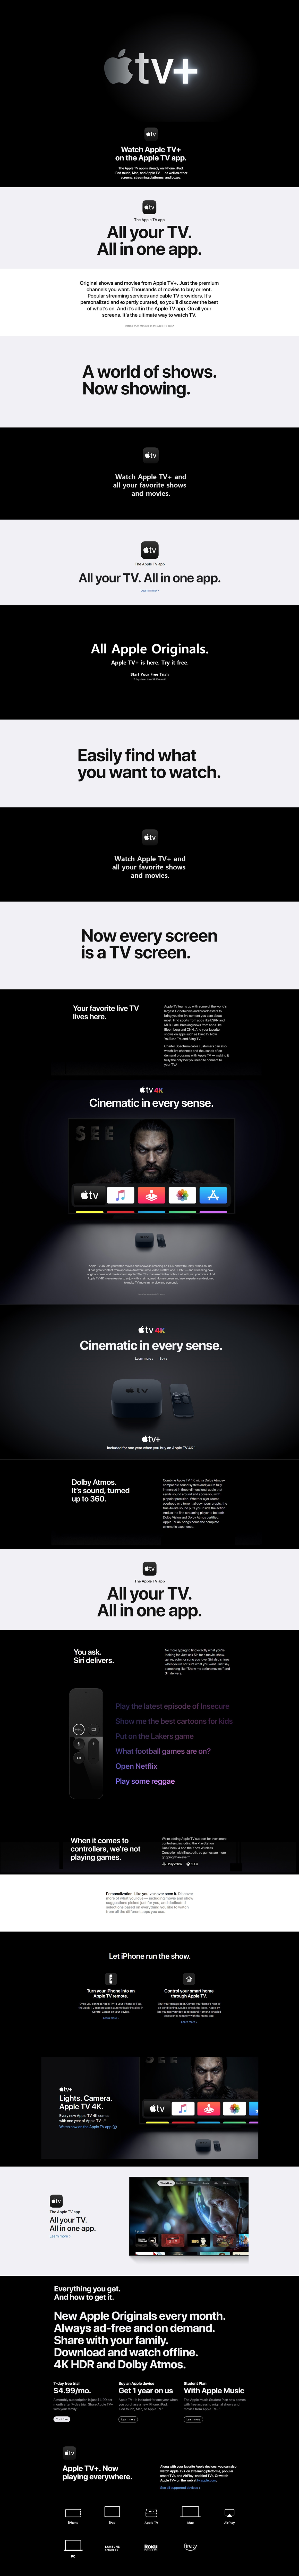 Apple TV+ Guide